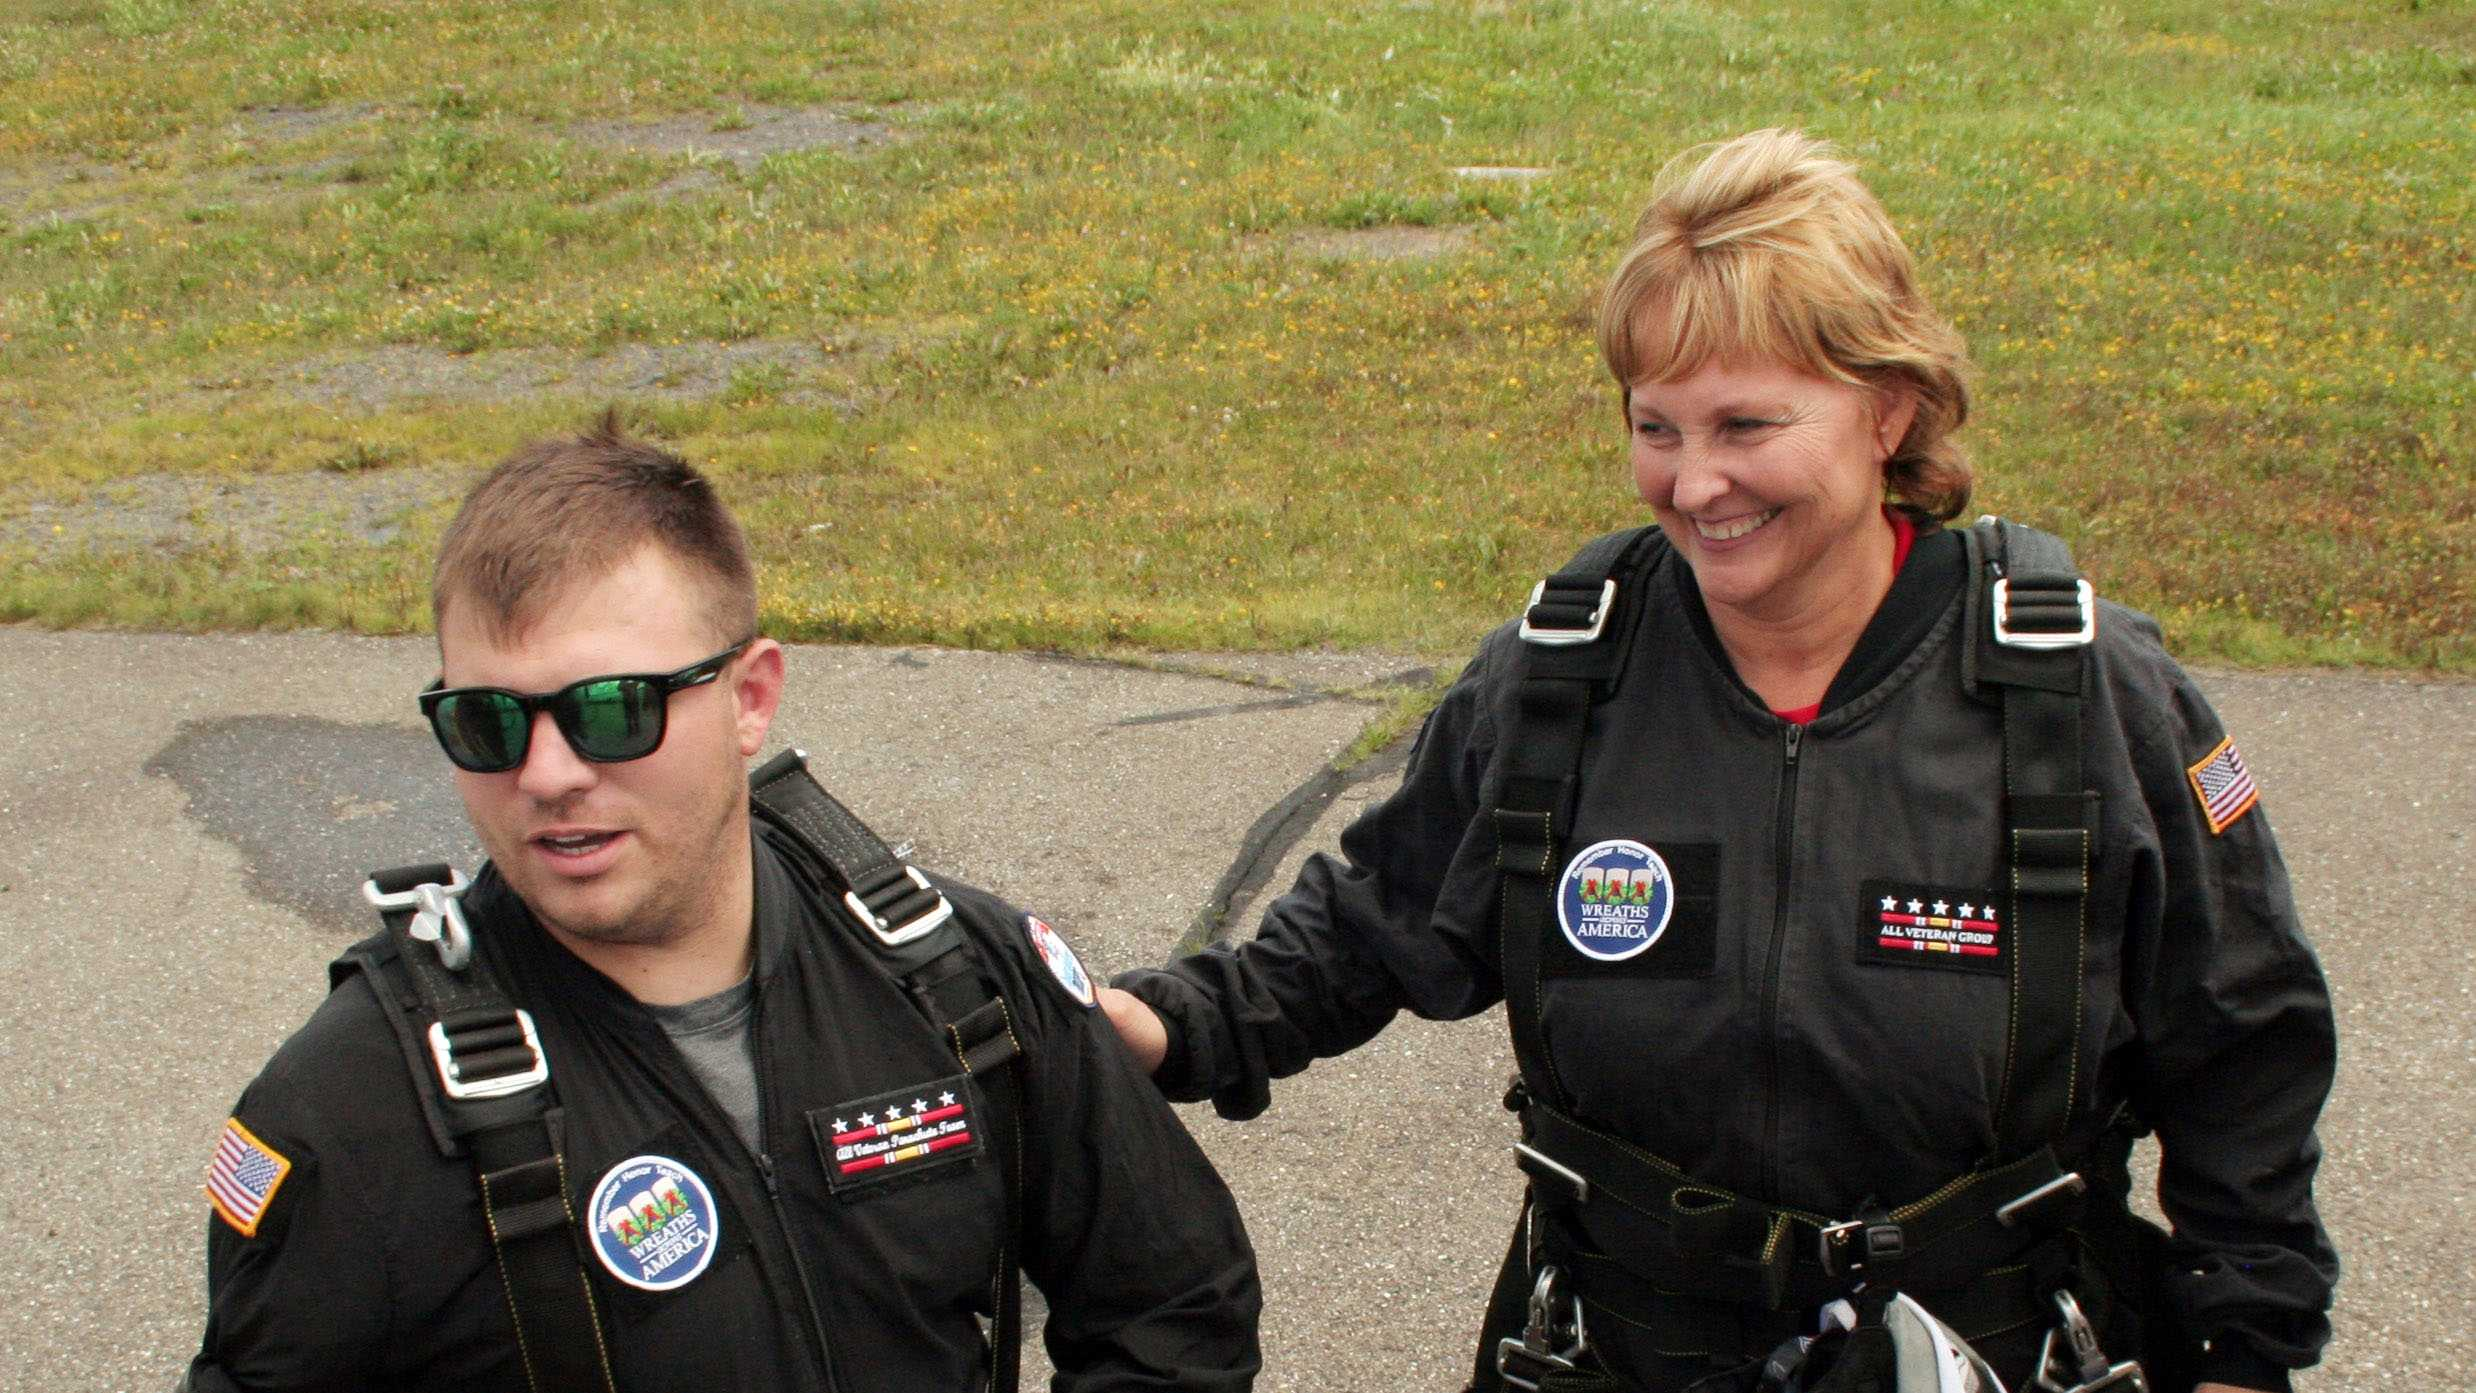 In this photo provided by the All Veterans Group, U.S. Army Staff Sgt. Travis Mills, left, walks with Maine's first lady Ann LePage prior to their parachute jump over Fort Kent, Maine, Saturday, Aug. 9, 2014.